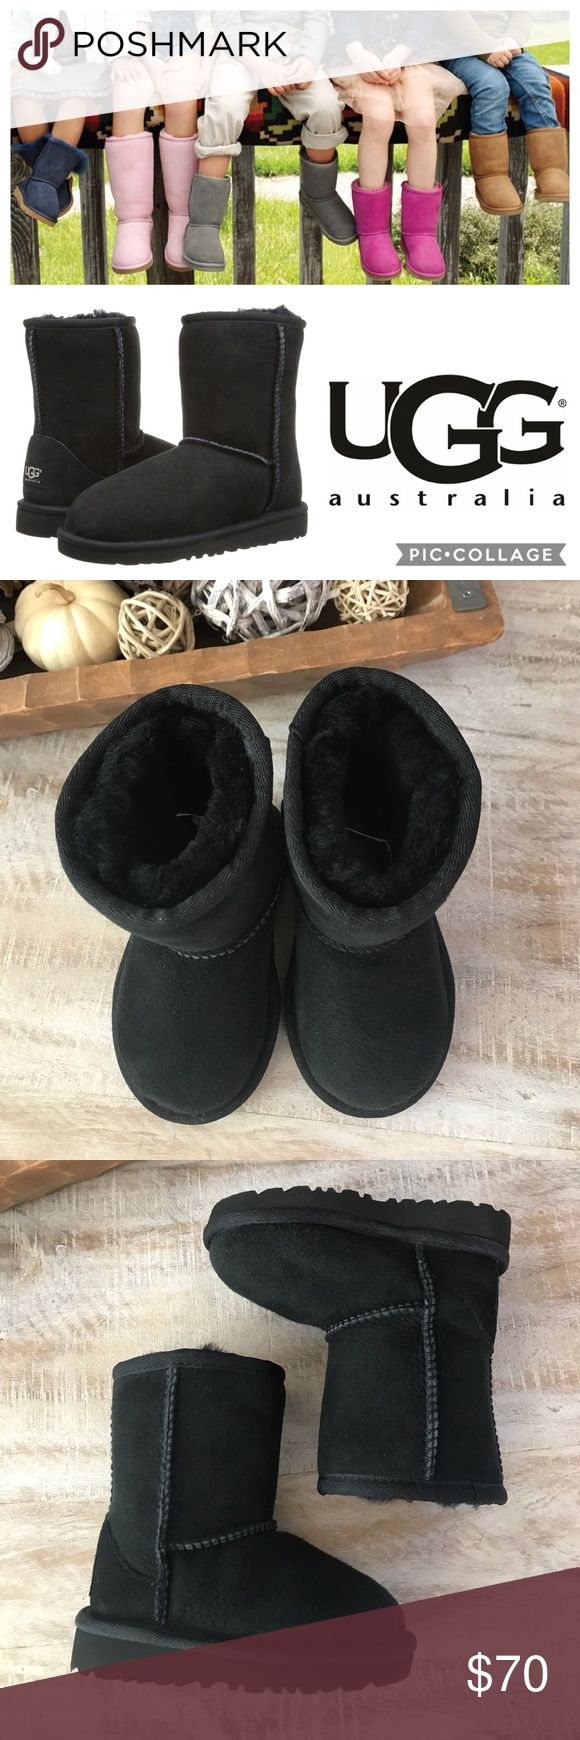 ❄️KIDS!! UGG Classic Short Boot {Black} 6 Keep your little one's feet warm this season with these Classic Short Boots from Ugg! An adorable short boot is designed especially for a child's foot. The soft, cozy lining is made from genuine shearling or plush UGGPure, a textile made from wool but shaped to feel and wear like genuine shearling. Twinface sheepskin upper/EVA sole. Dept store closeout/store sample. Brand new! 🚫no trades, low offers not accepted. UGG Shoes Boots